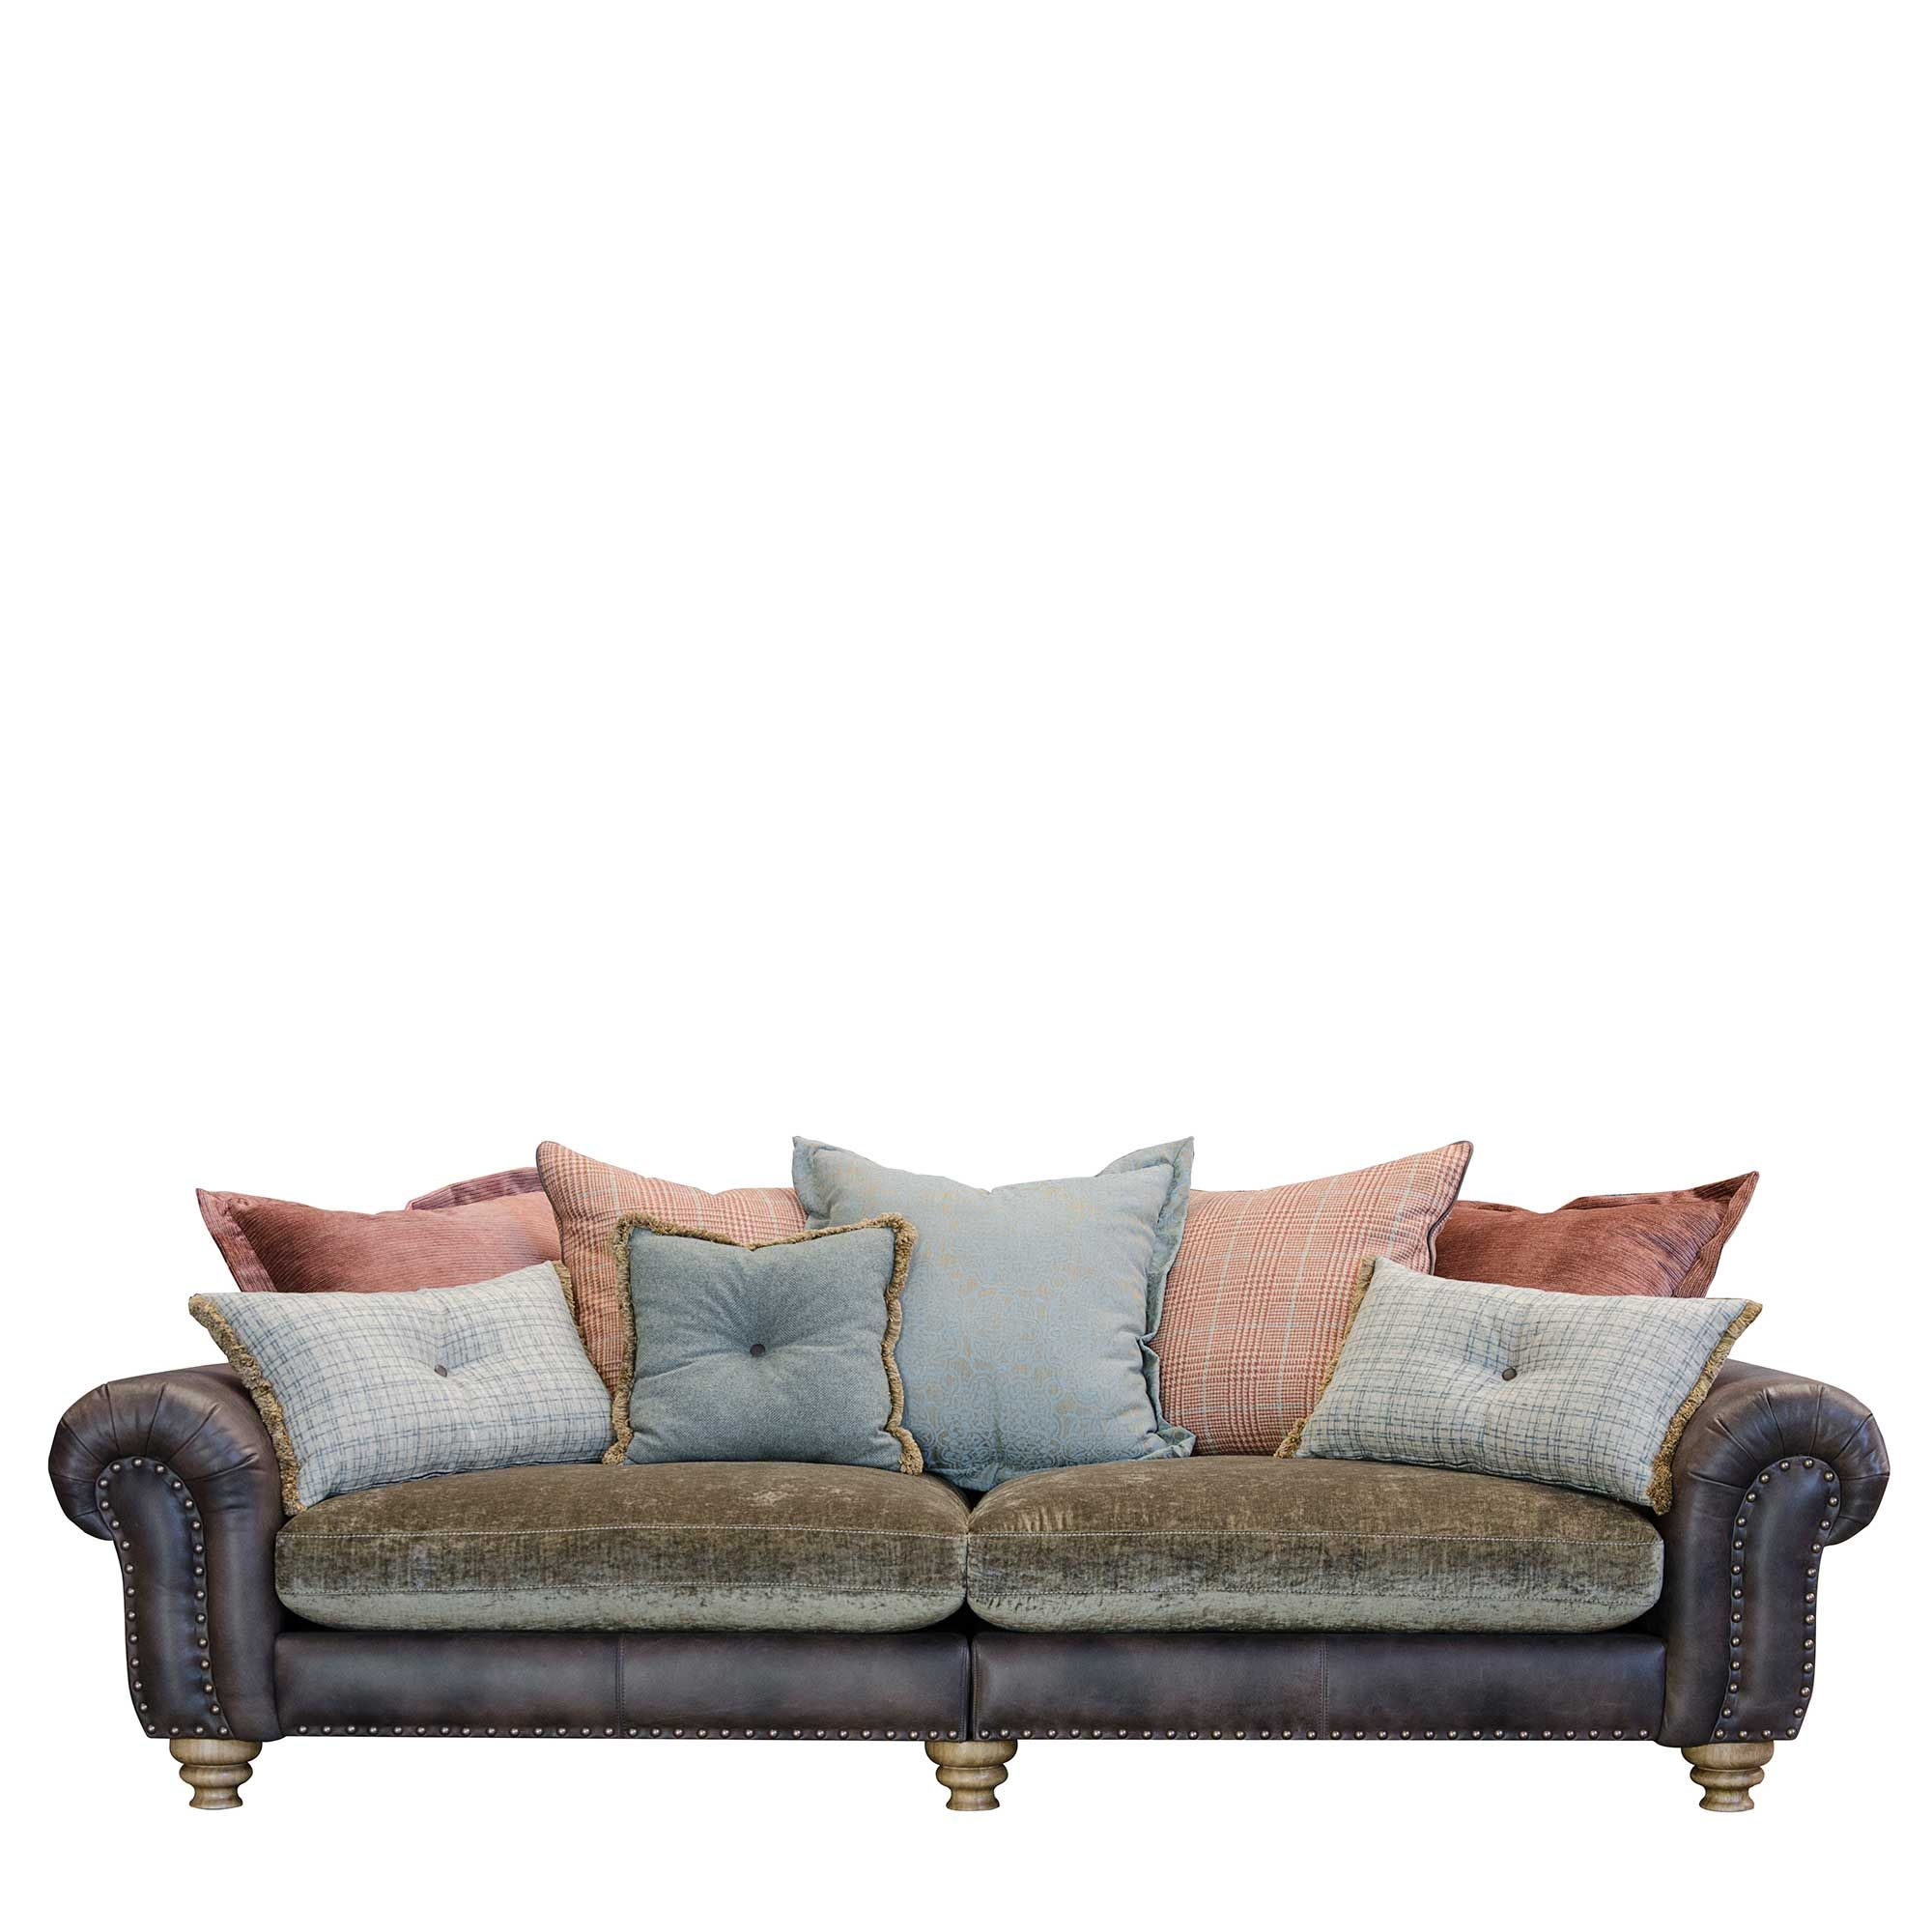 Dorchester Grand Split Pillow Back Sofa Choice Of Leather Available Online At Barker Stonehouse Browse Our Fa Sofa Lounge Furniture Living Room Inspiration